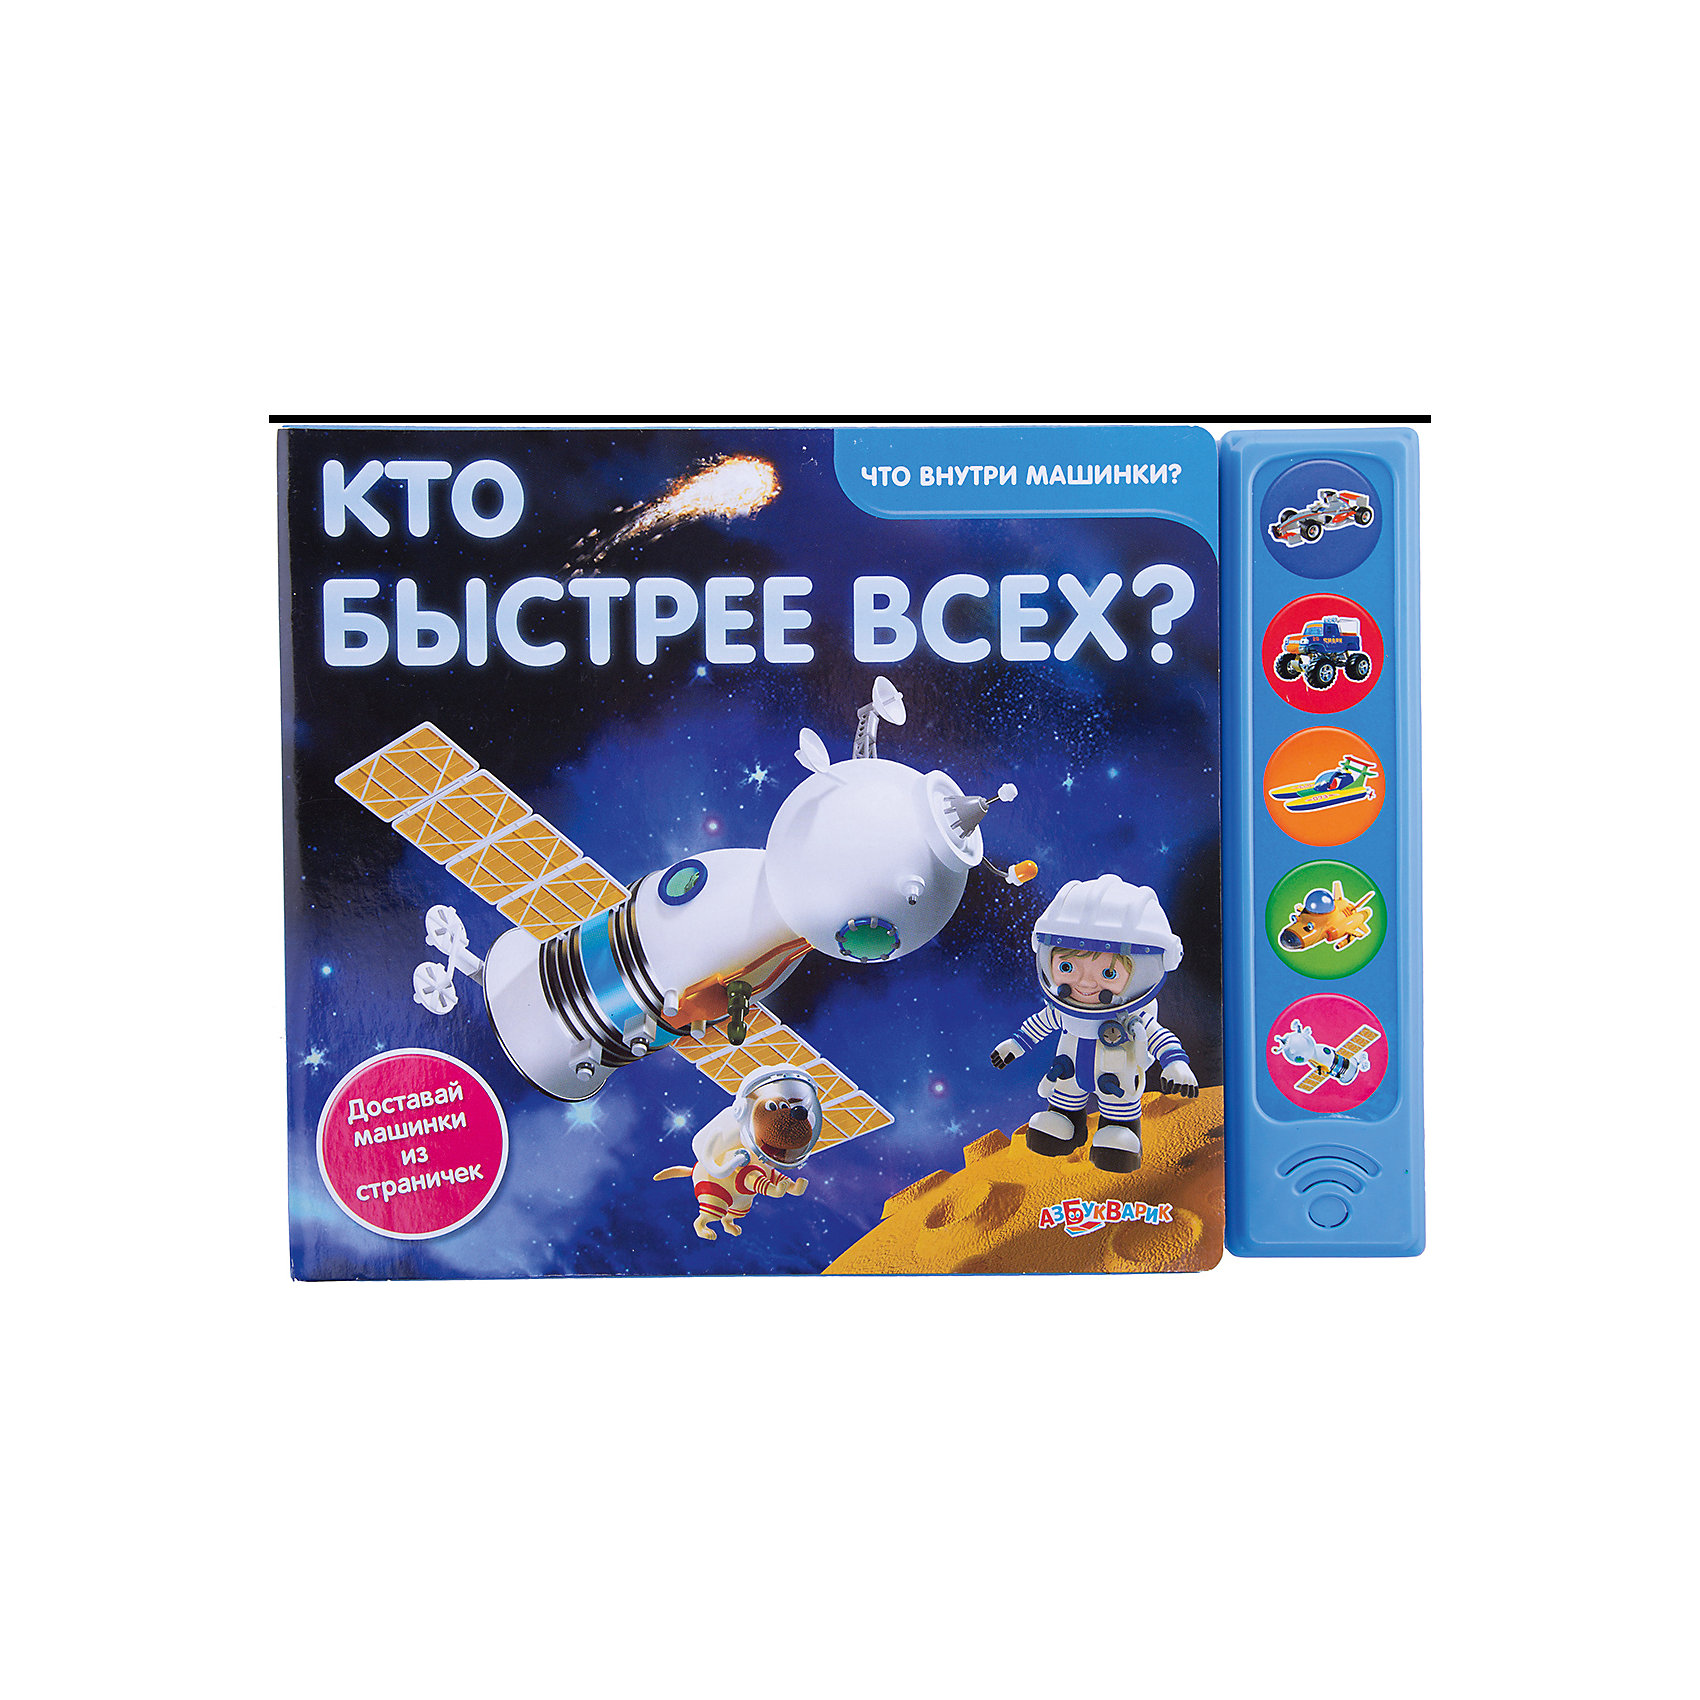 http://mytoysgroup.scene7.com/is/image/myToys/ext/2348414-01.jpg$x$